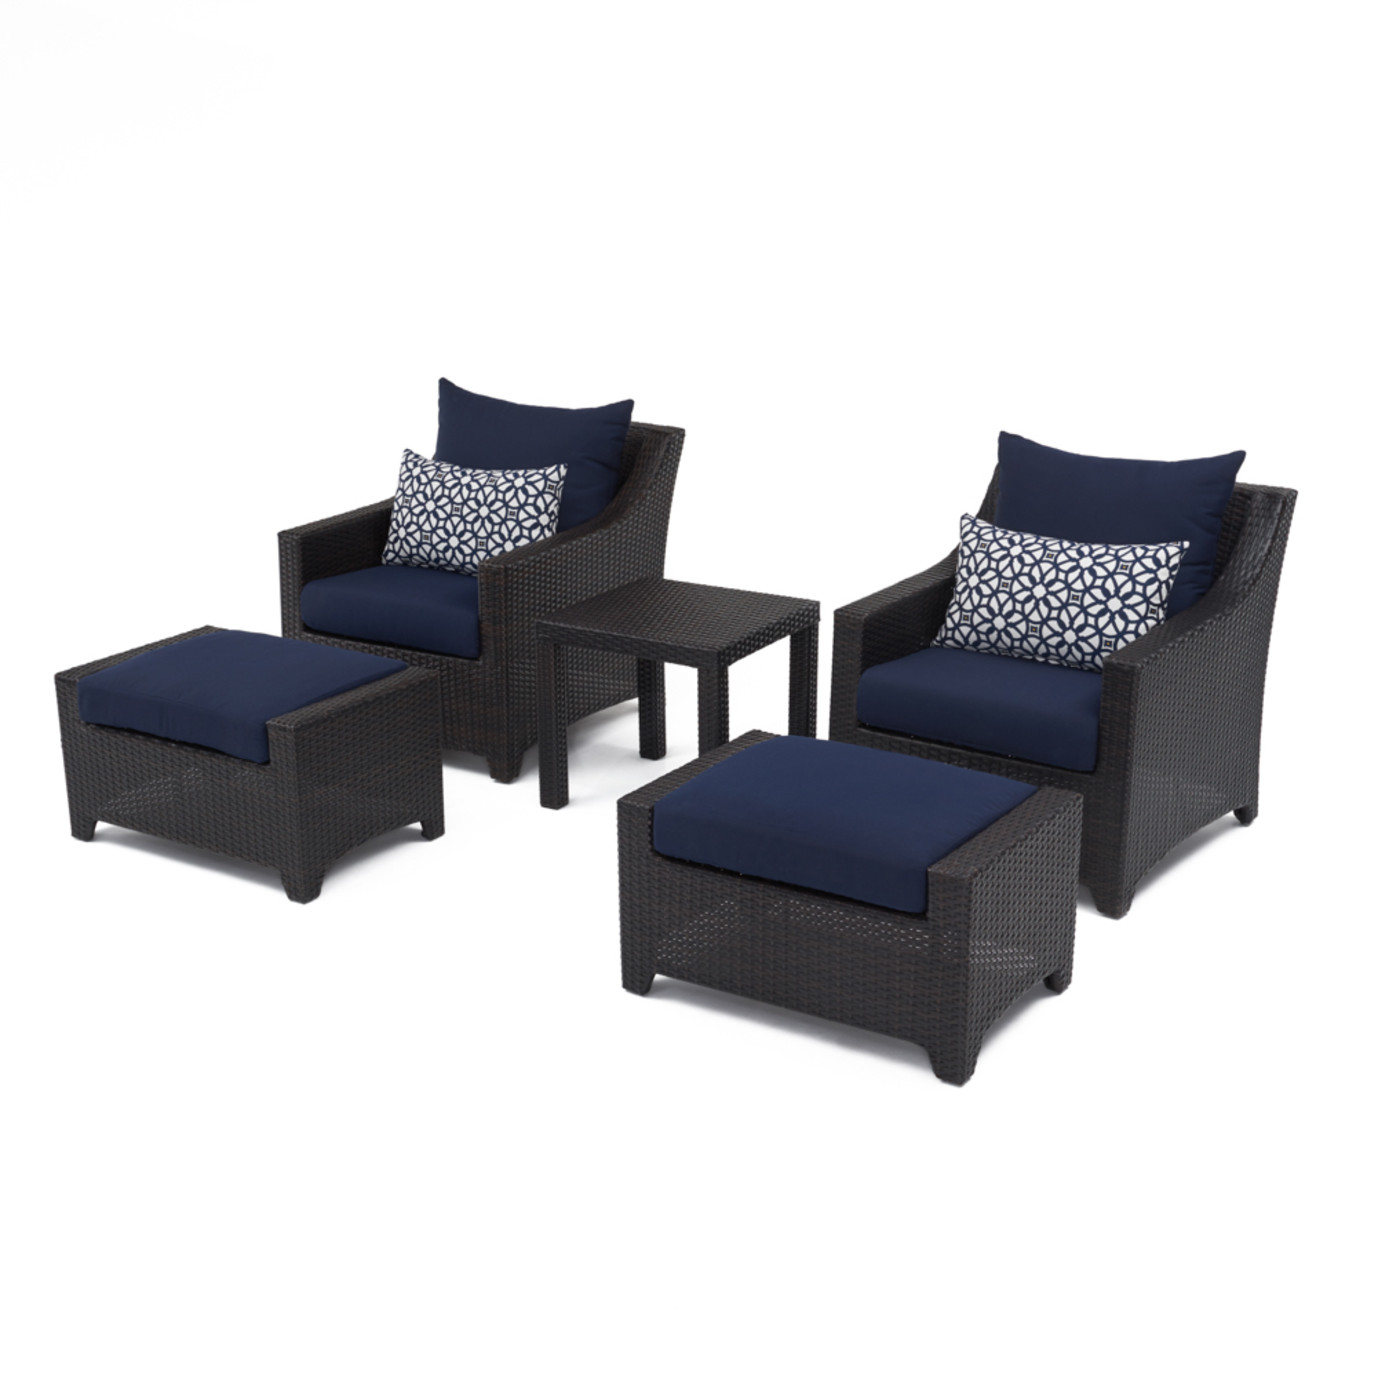 Deco™ 5pc Club Chair and Ottoman Set - Navy Blue